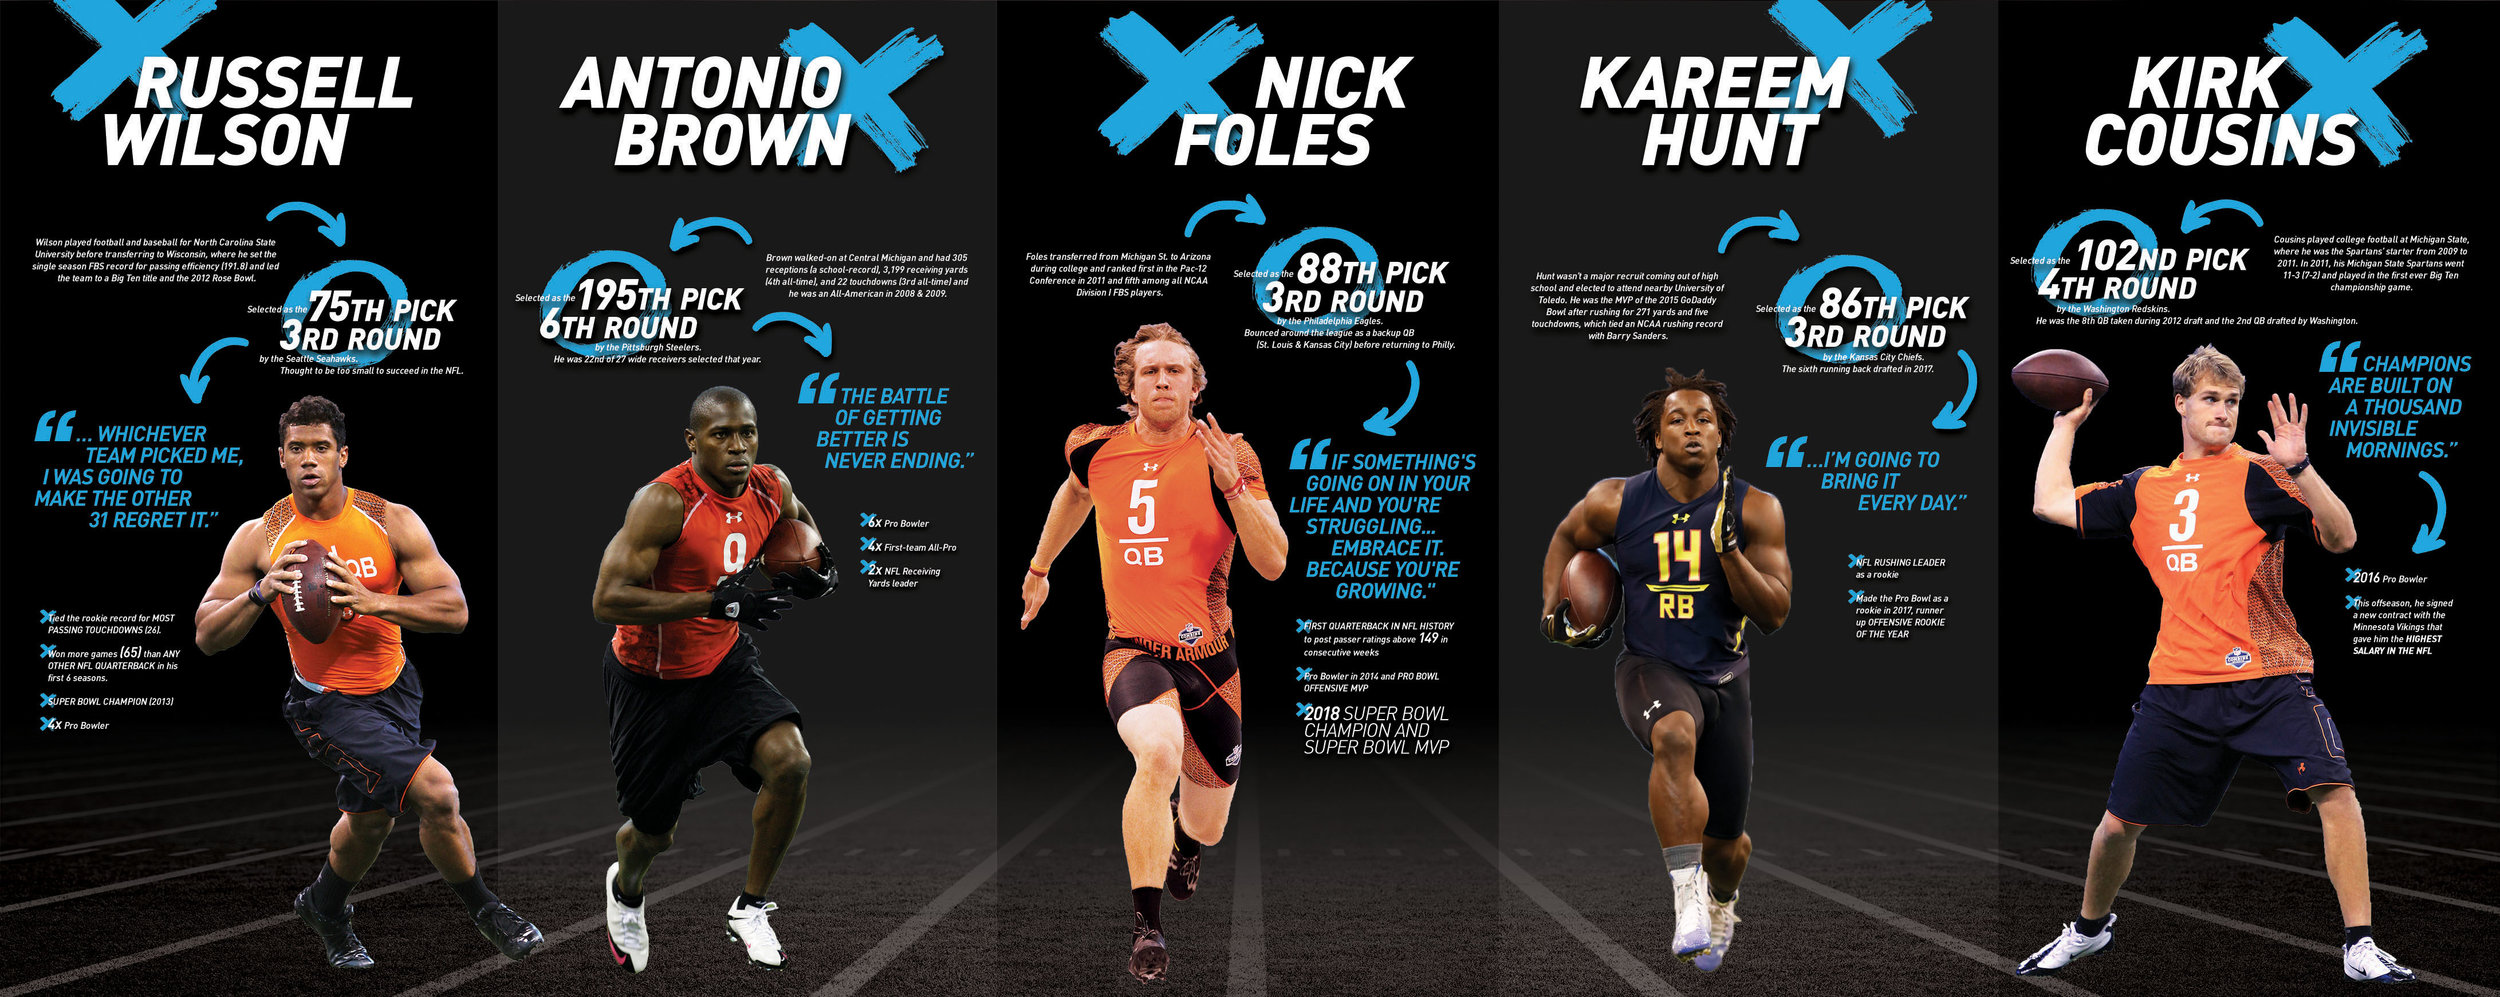 Oikos_draftexp_HoH_wall1and2_combine_b.jpg